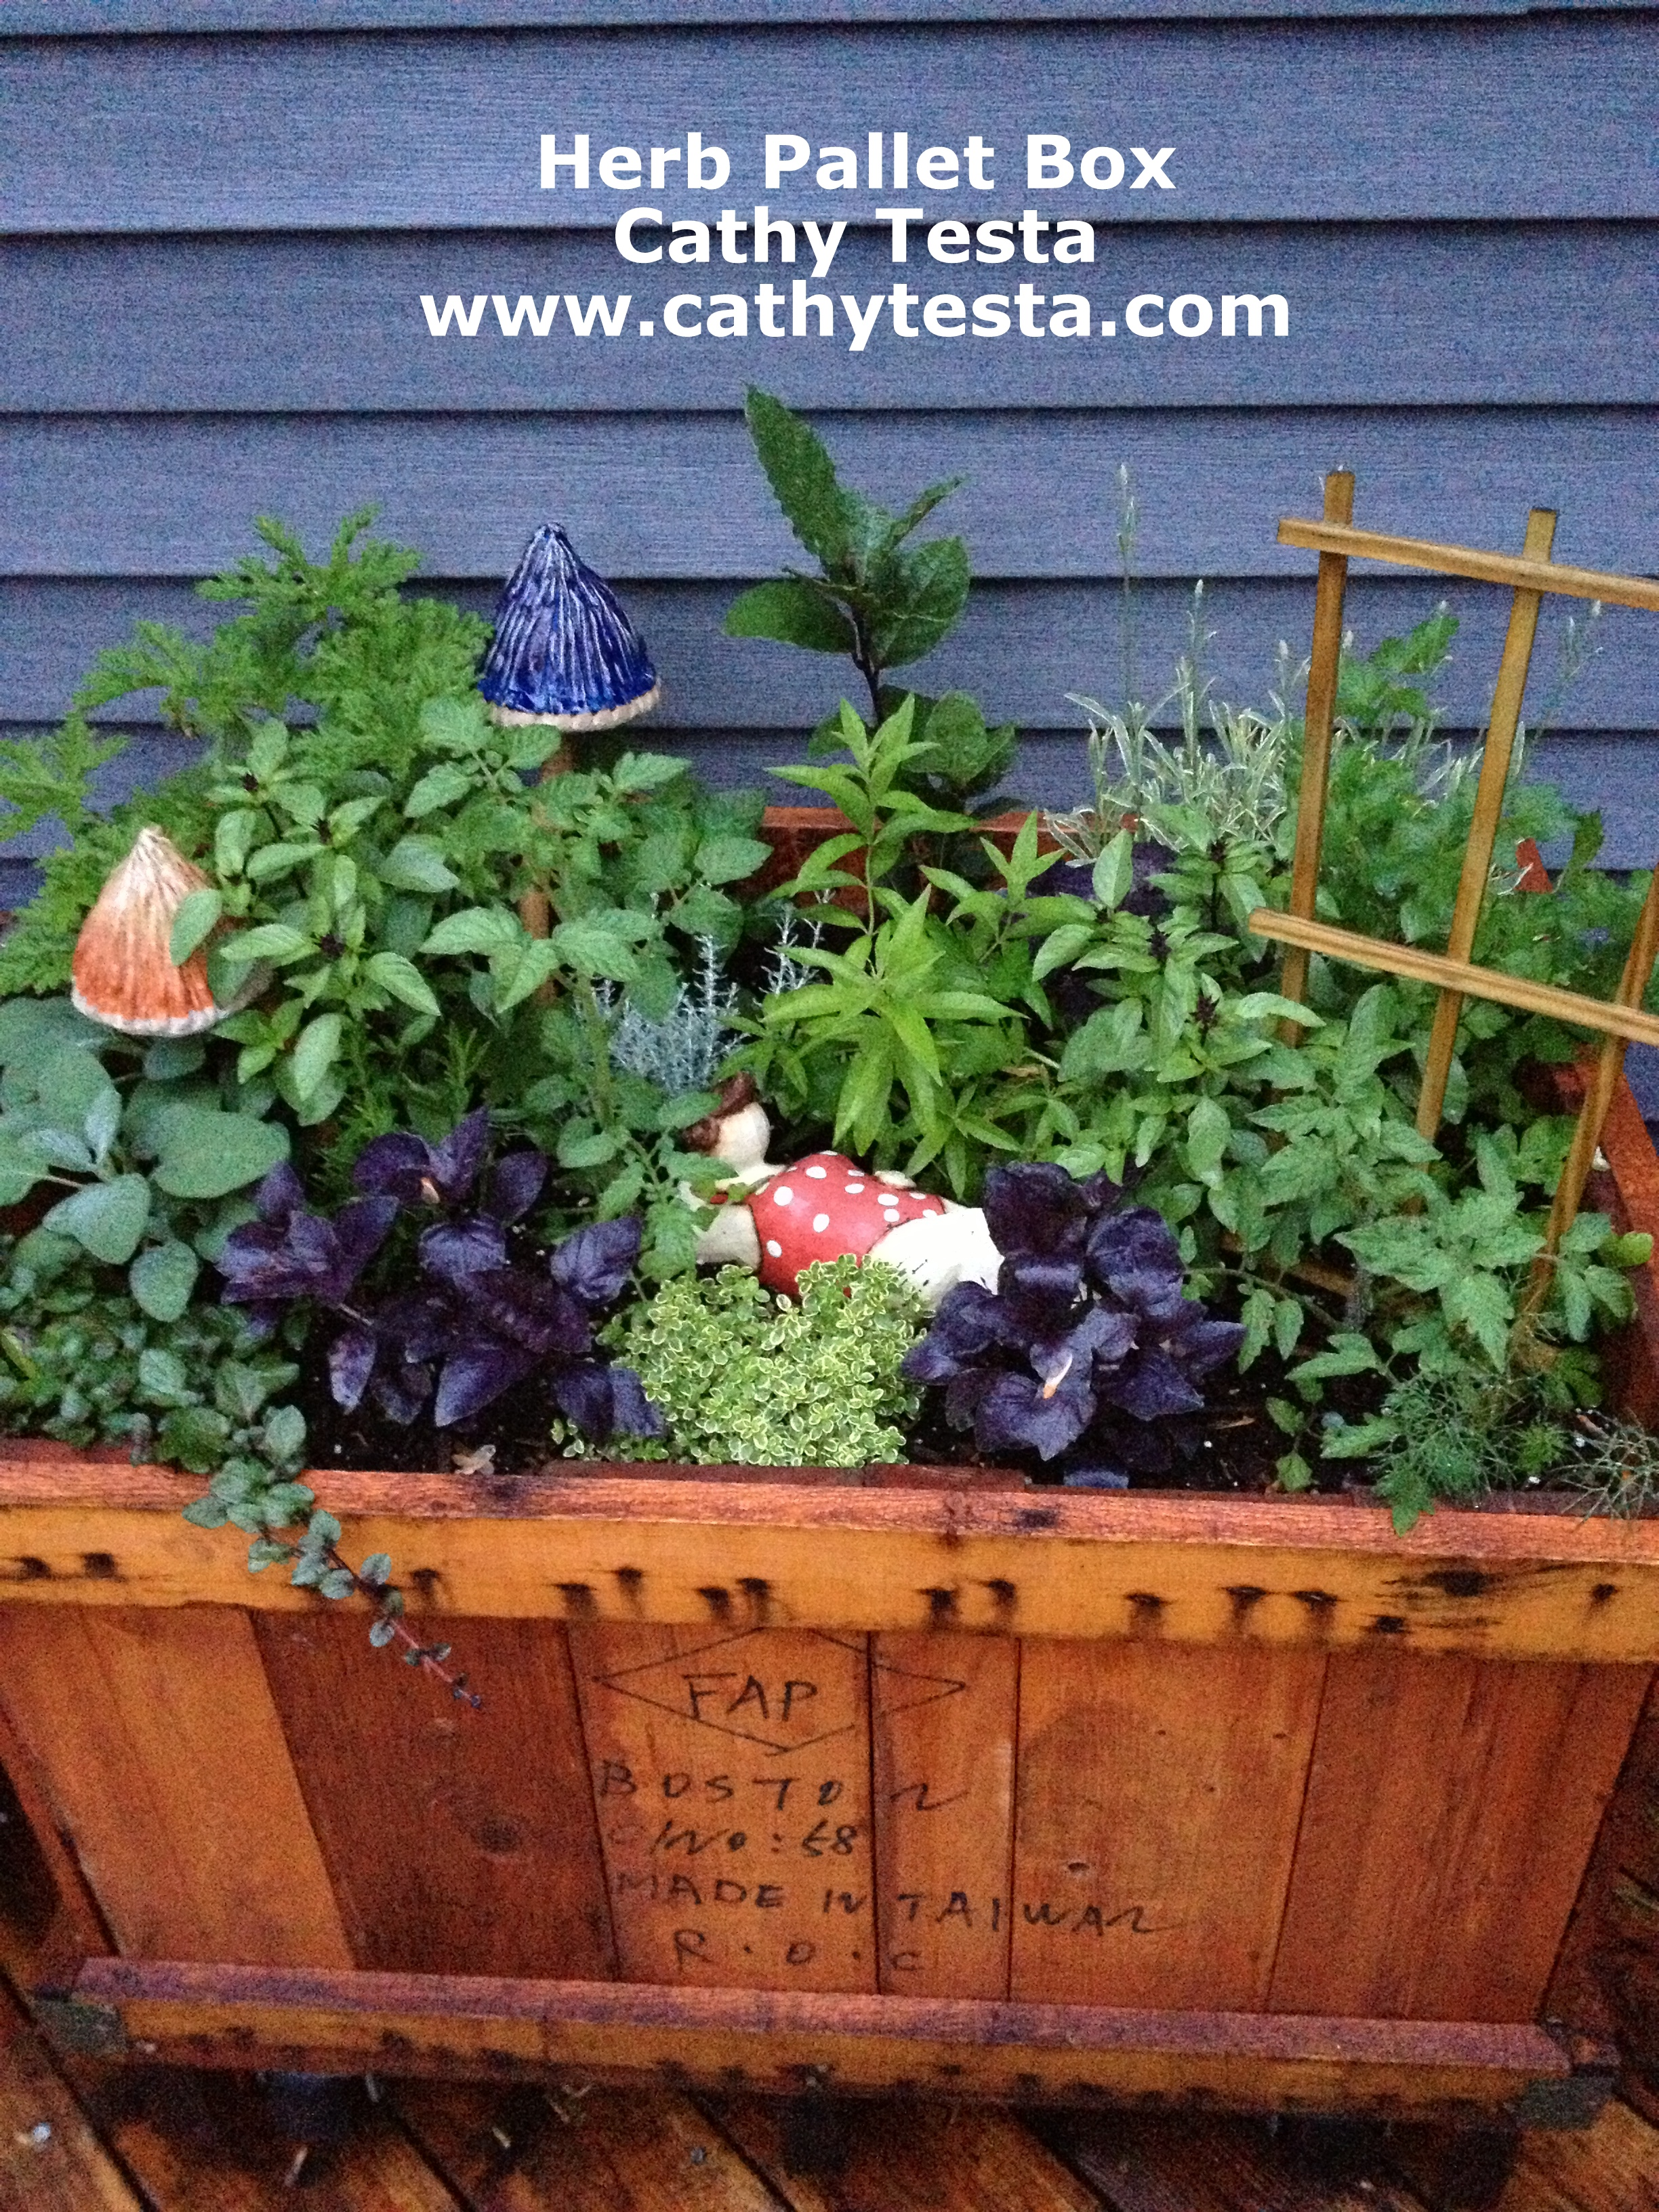 Garden Design Garden Design with Container Gardening Ideas